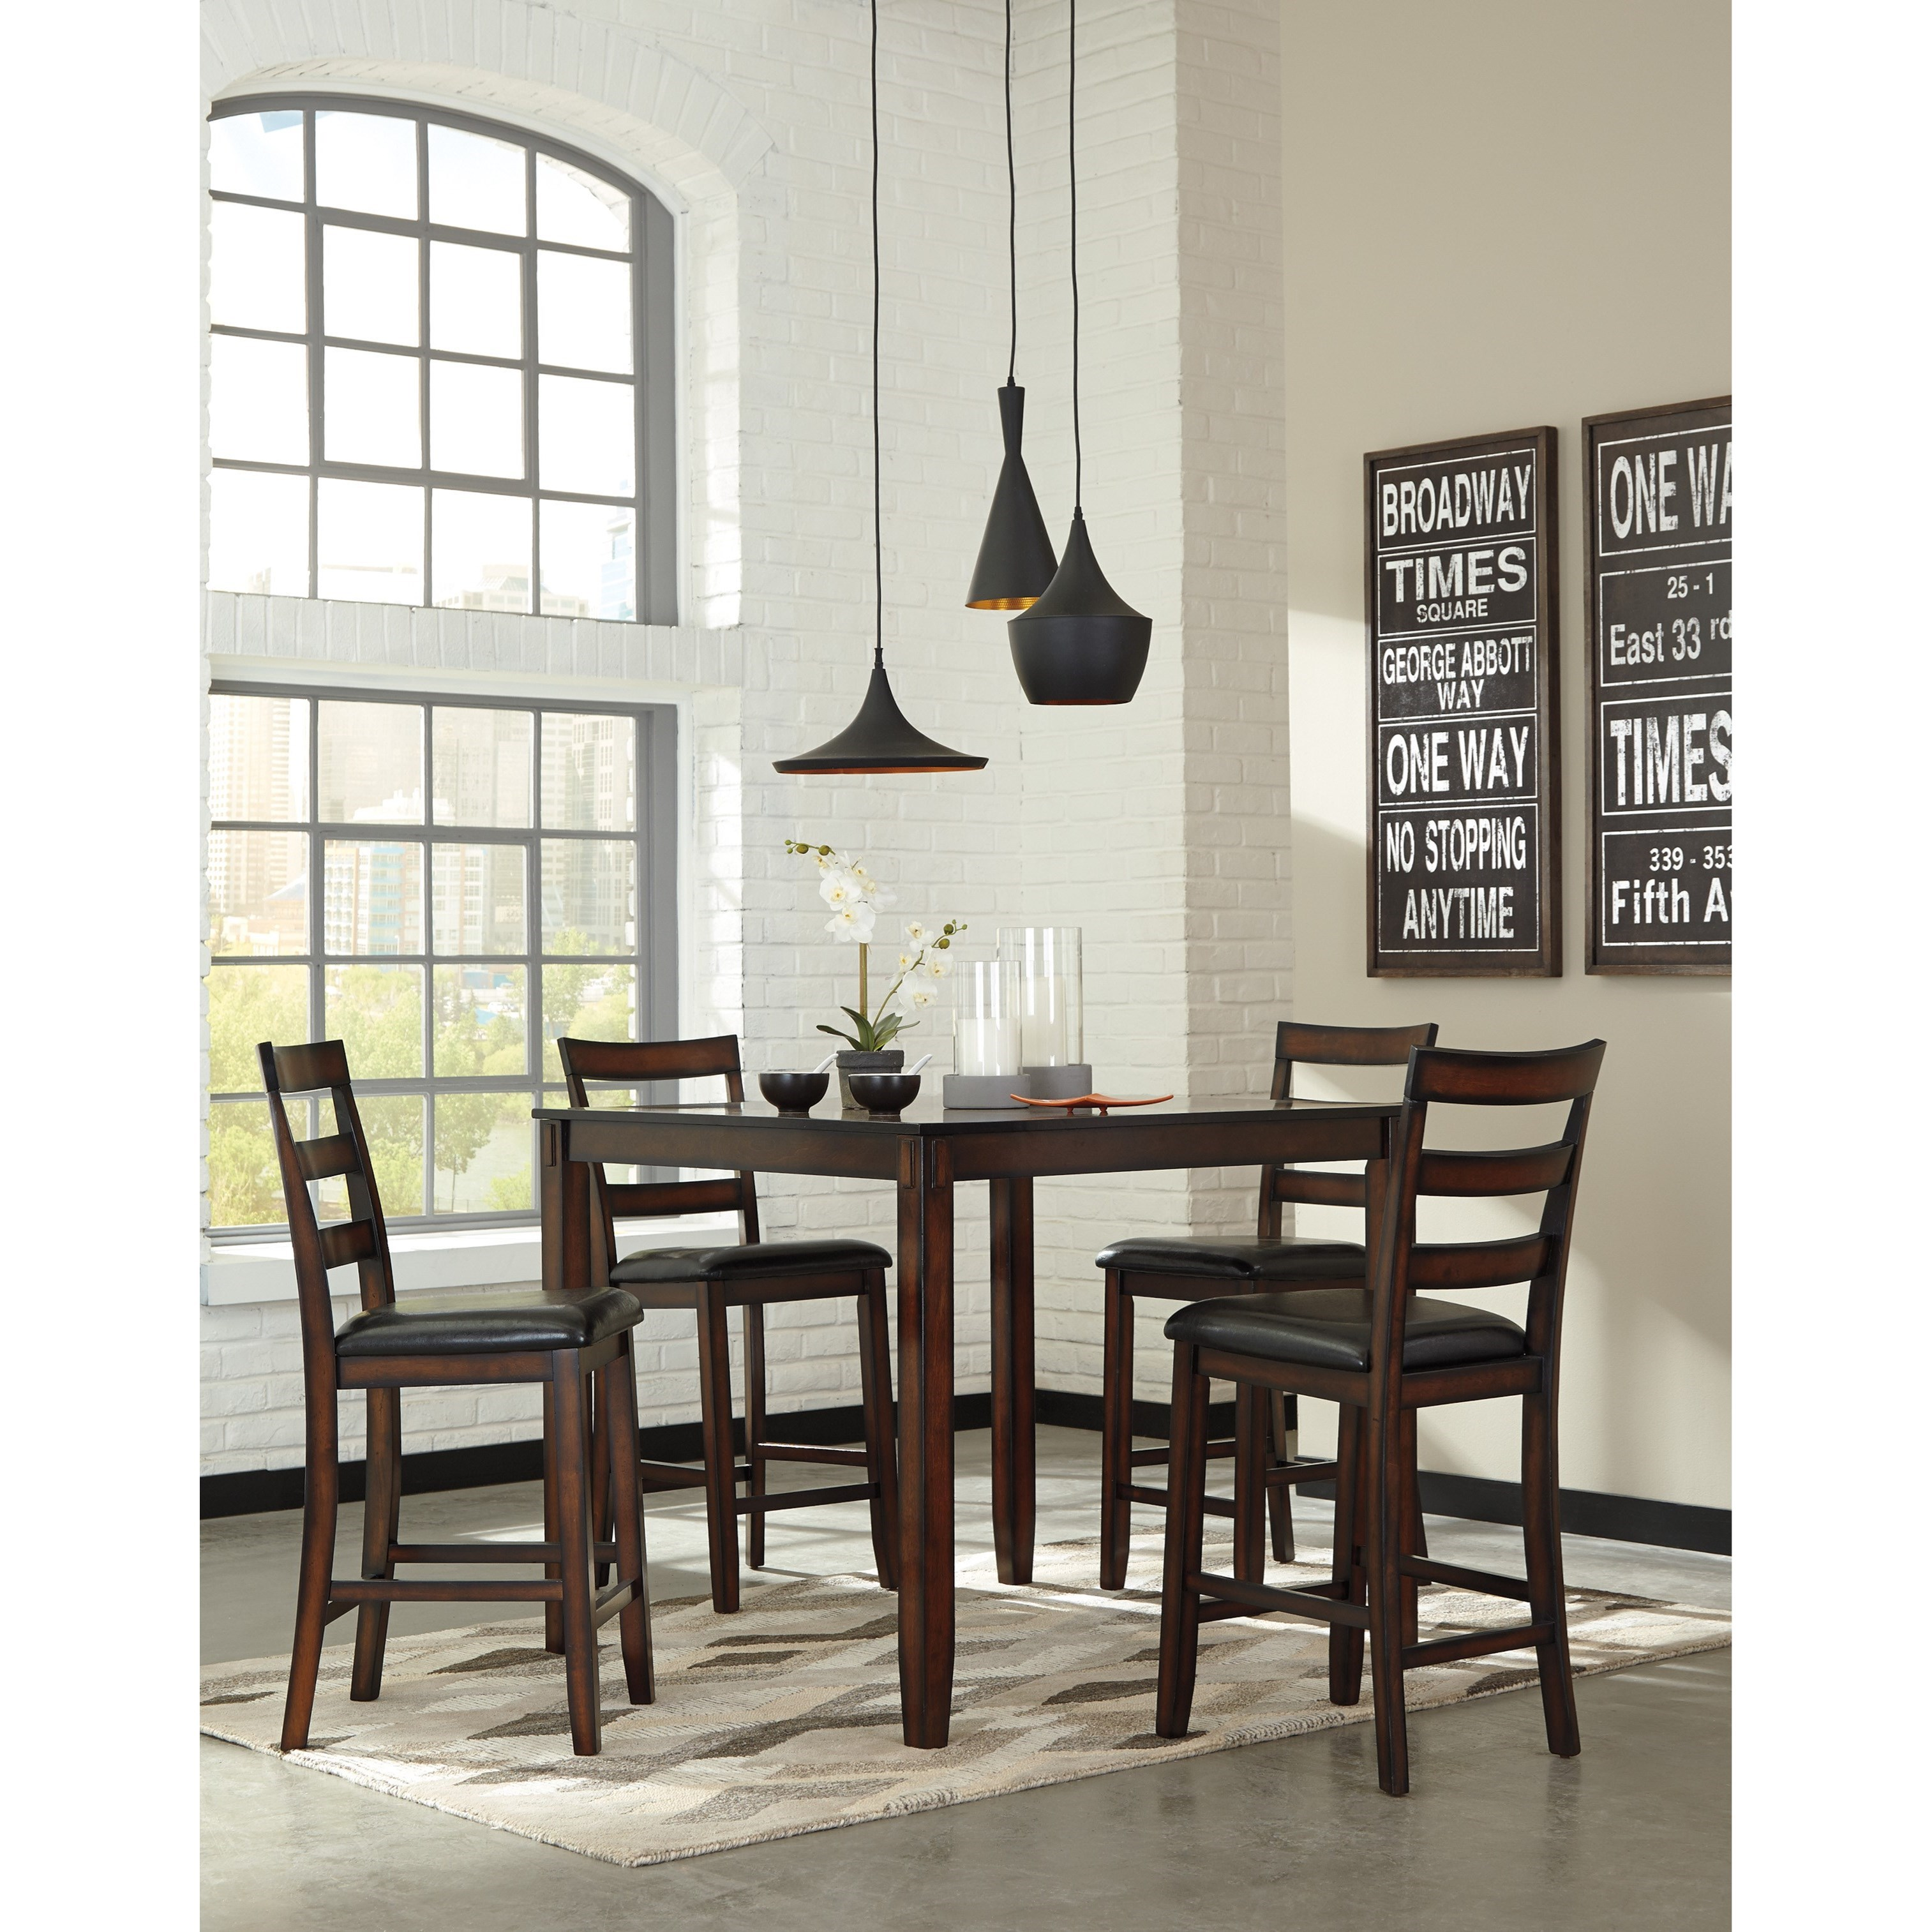 Ashley S Nest Decorating A Dining Room: Signature Design By Ashley Coviar D385-223 Burnished Brown